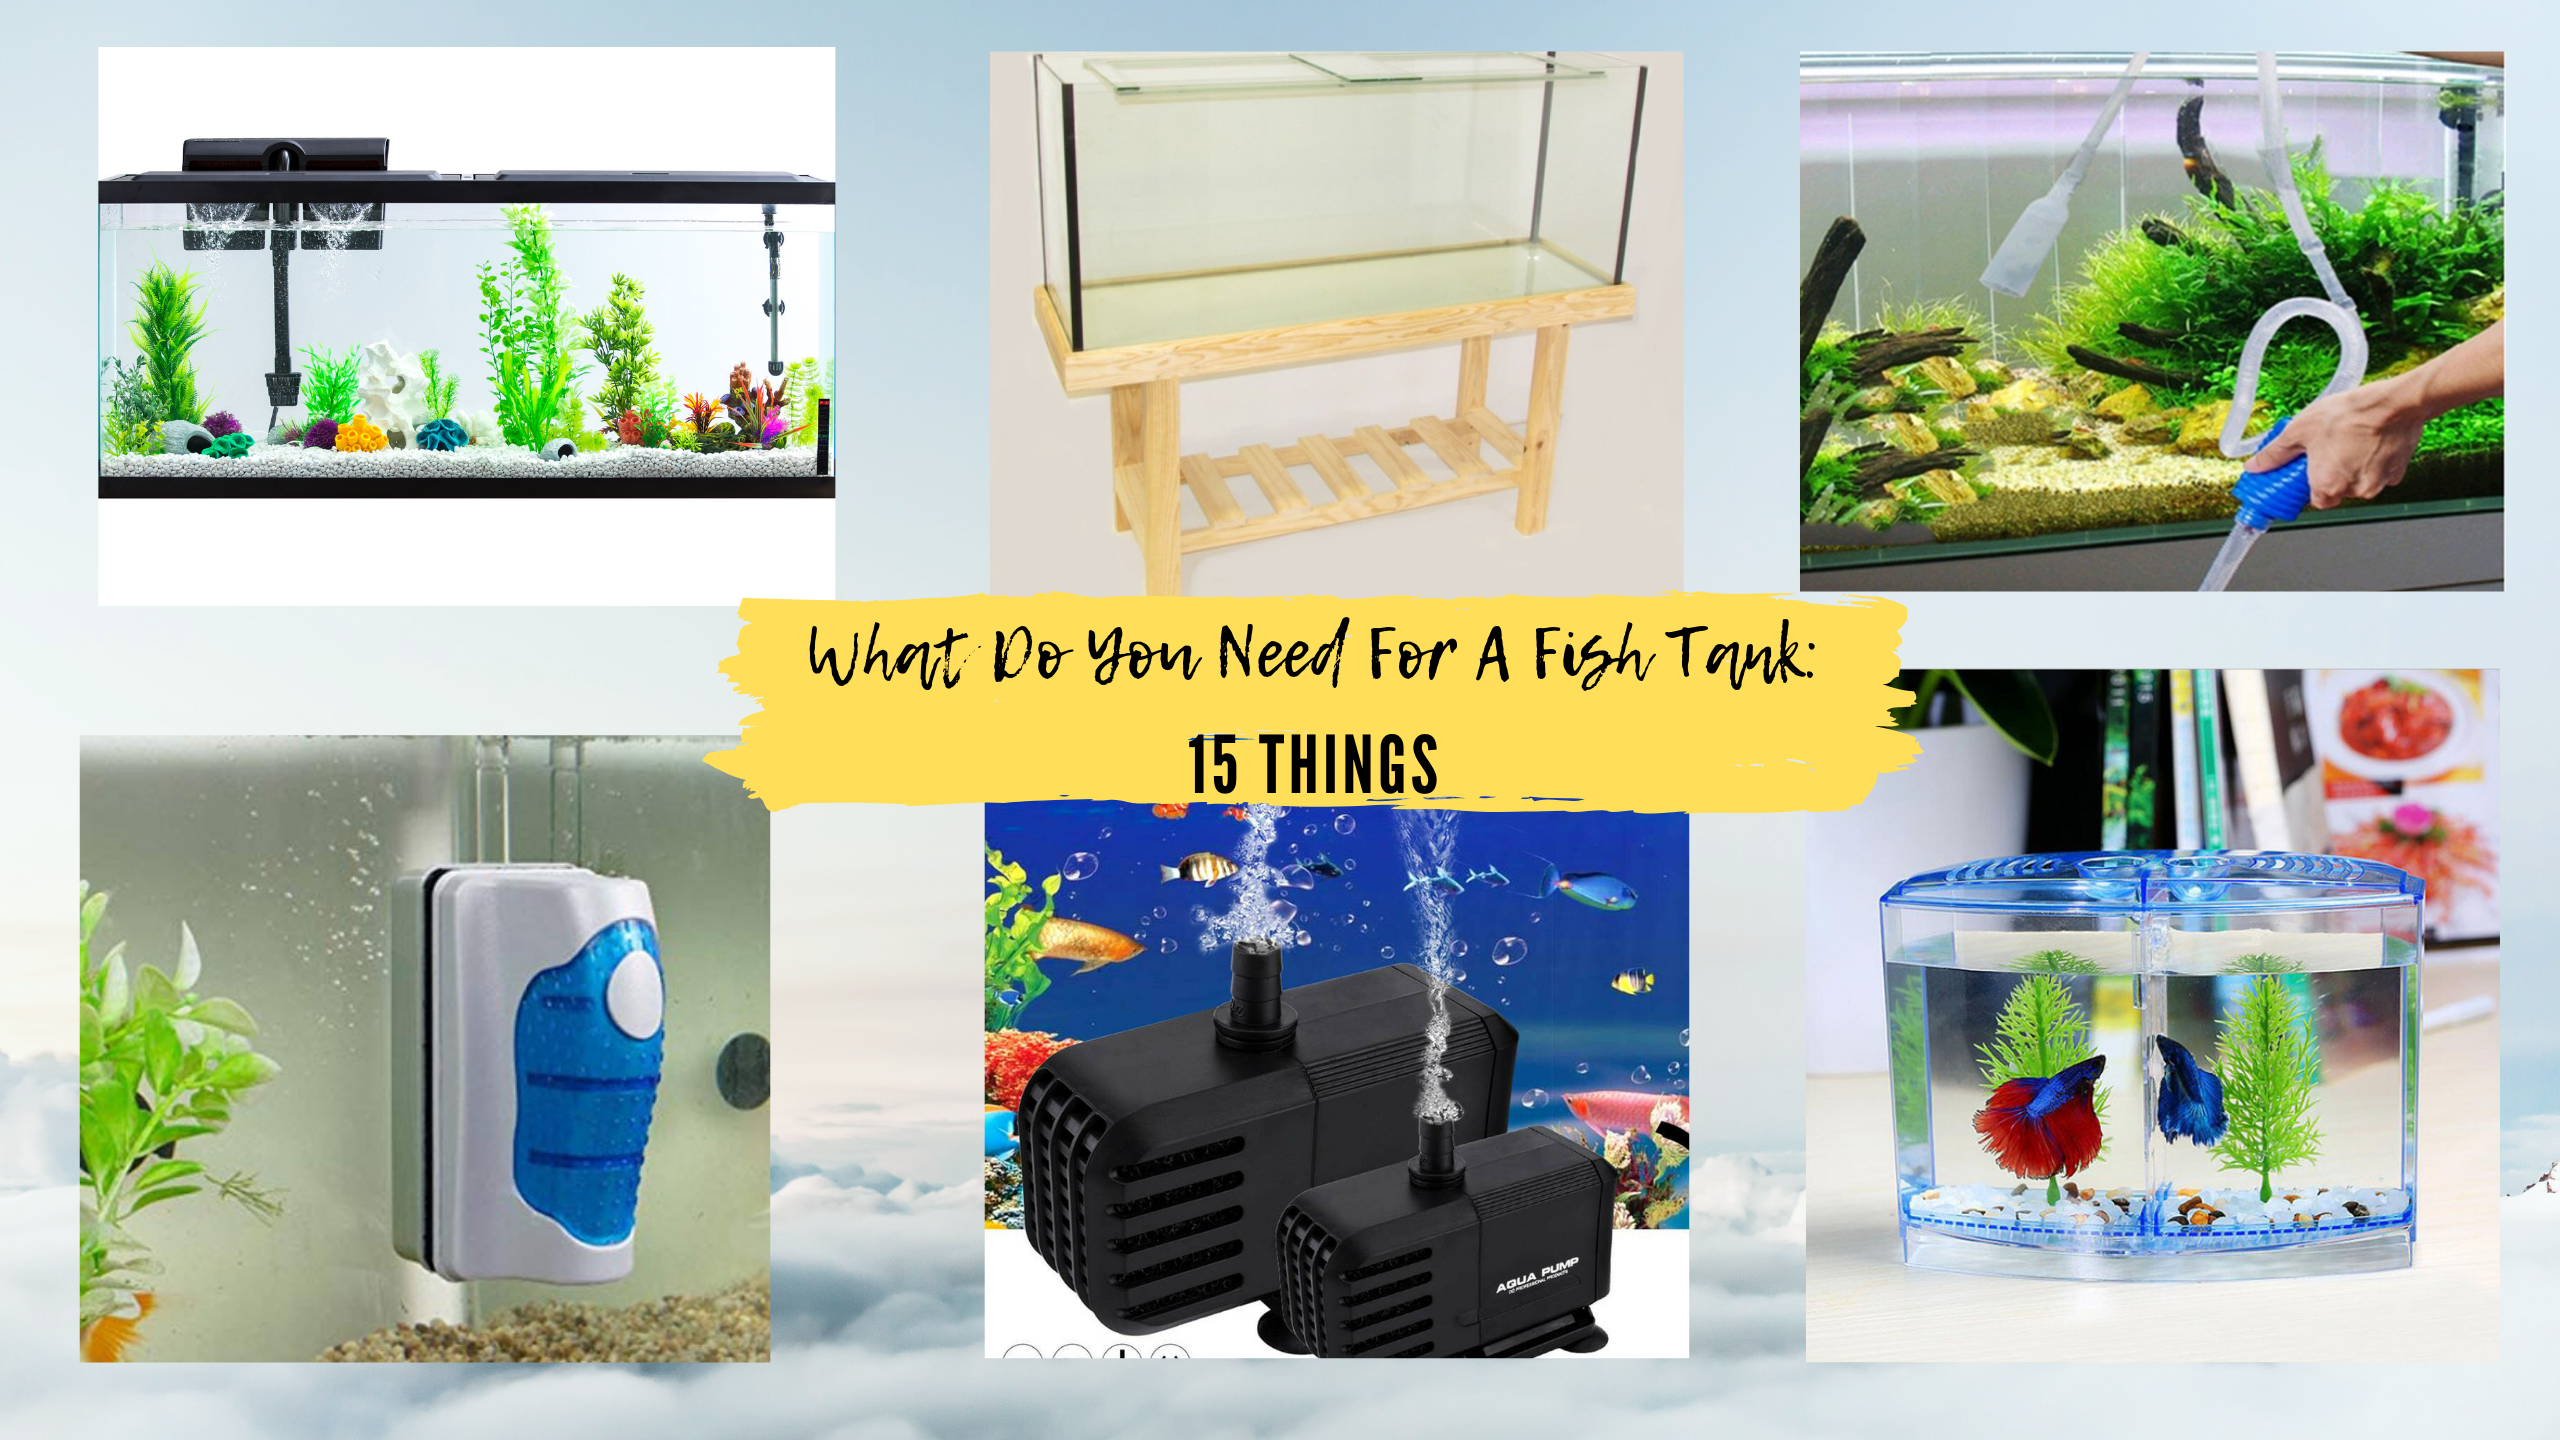 What Do You Need For A Fish Tank